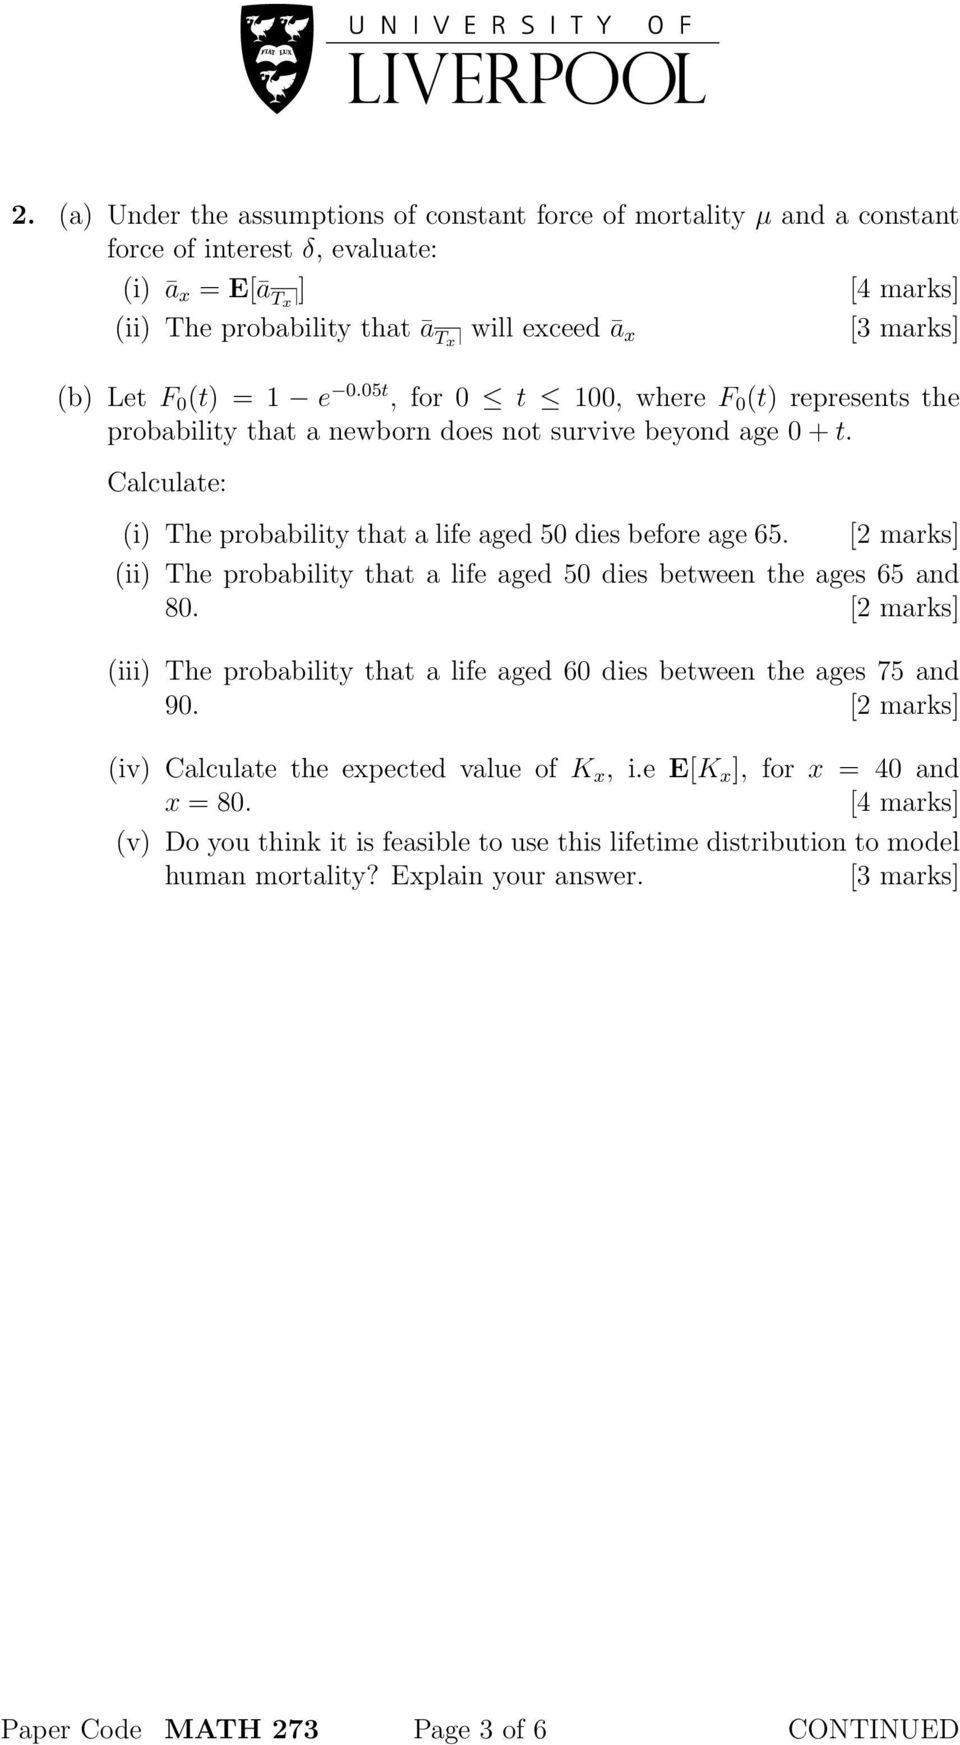 [2 marks] (ii) The probability that a life aged 50 dies between the ages 65 and 80. [2 marks] (iii) The probability that a life aged 60 dies between the ages 75 and 90.